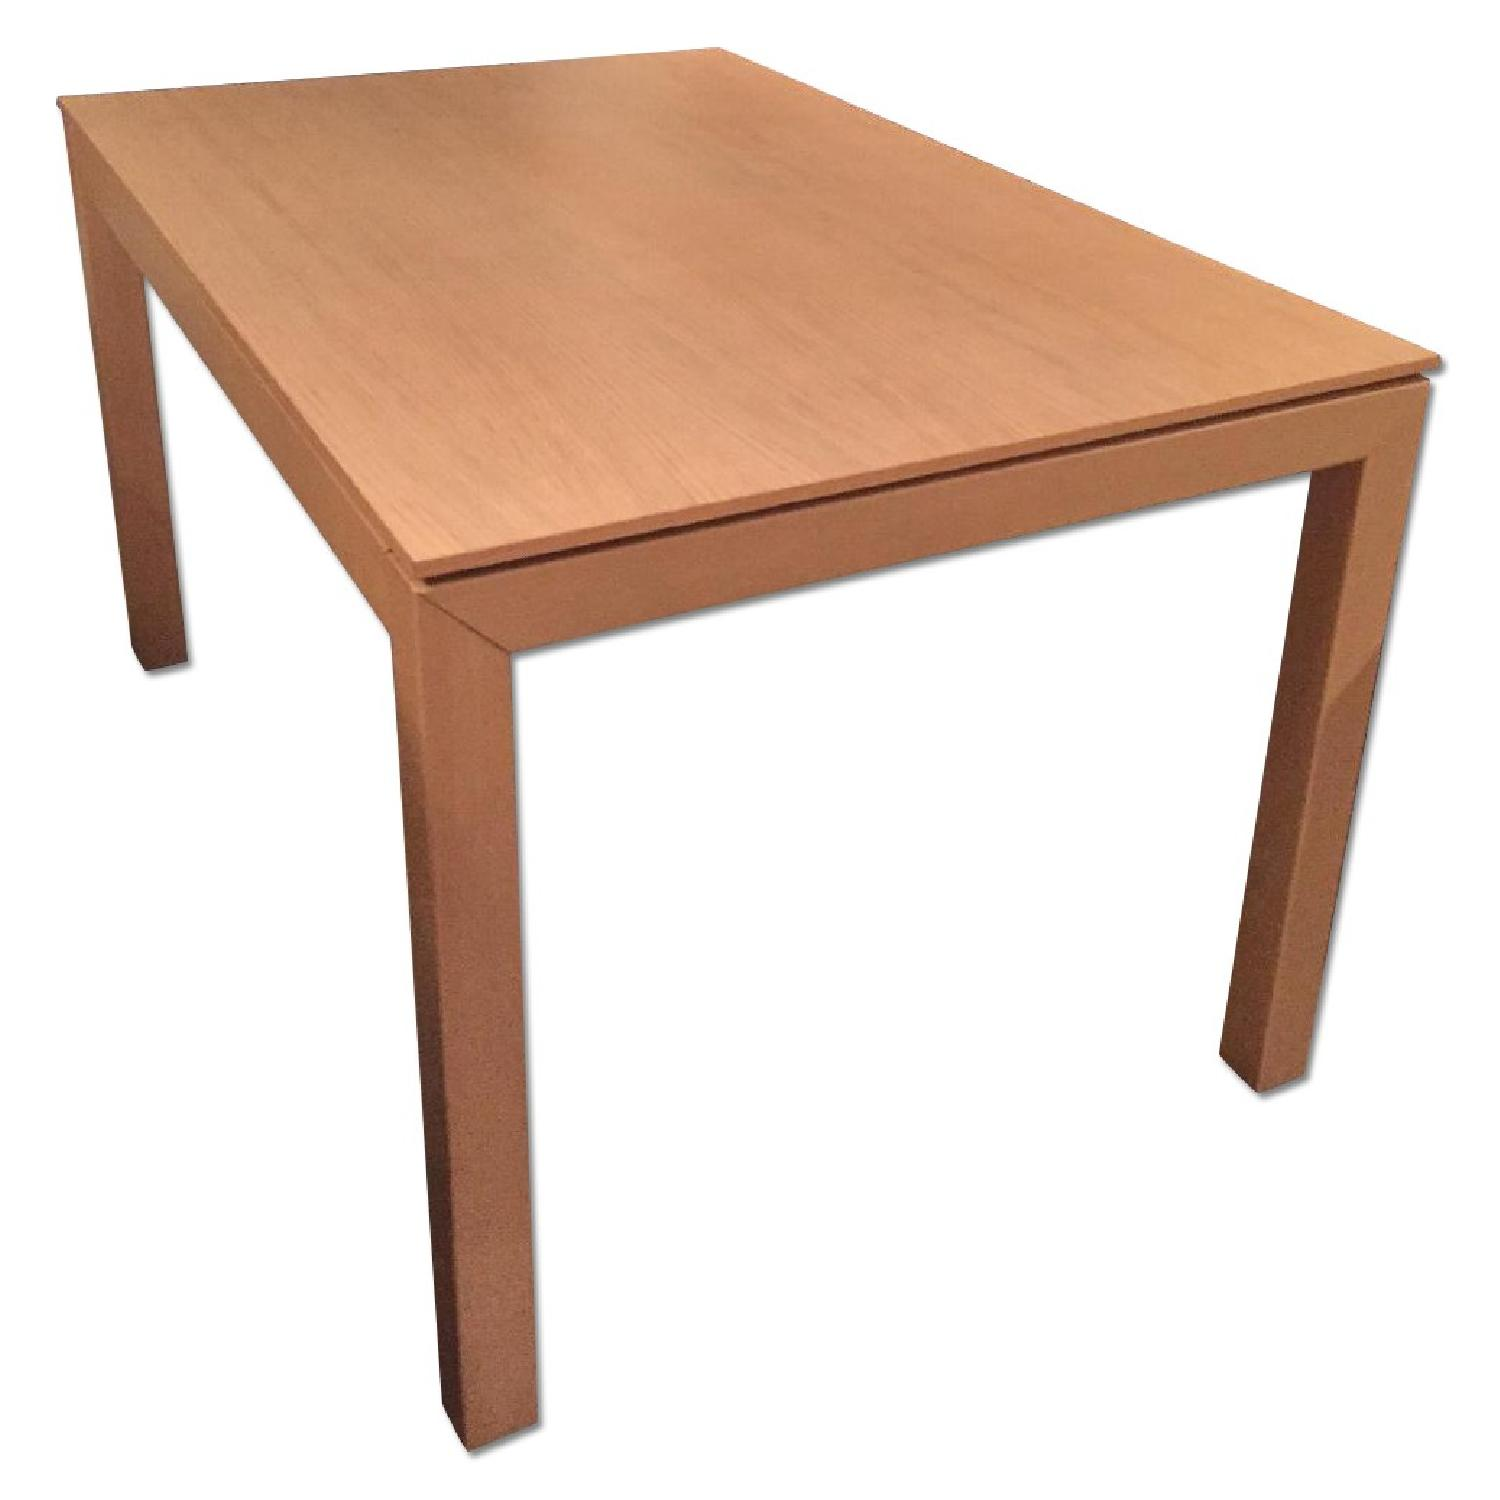 Calligaris Expandable Table in Birch - image-0